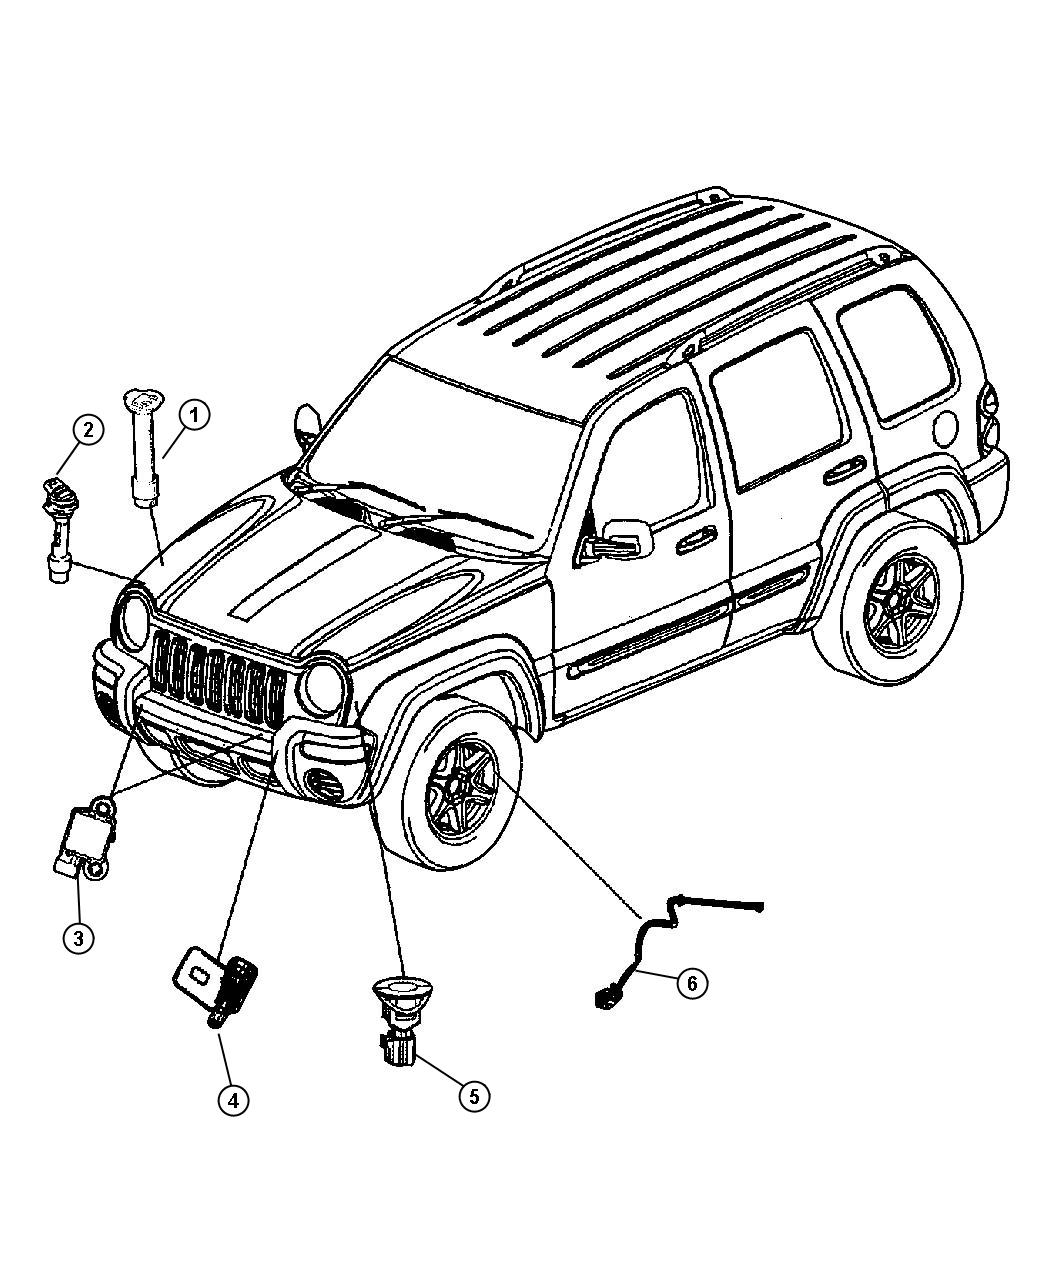 6 Duramax Coolant Temperature Sensor Location